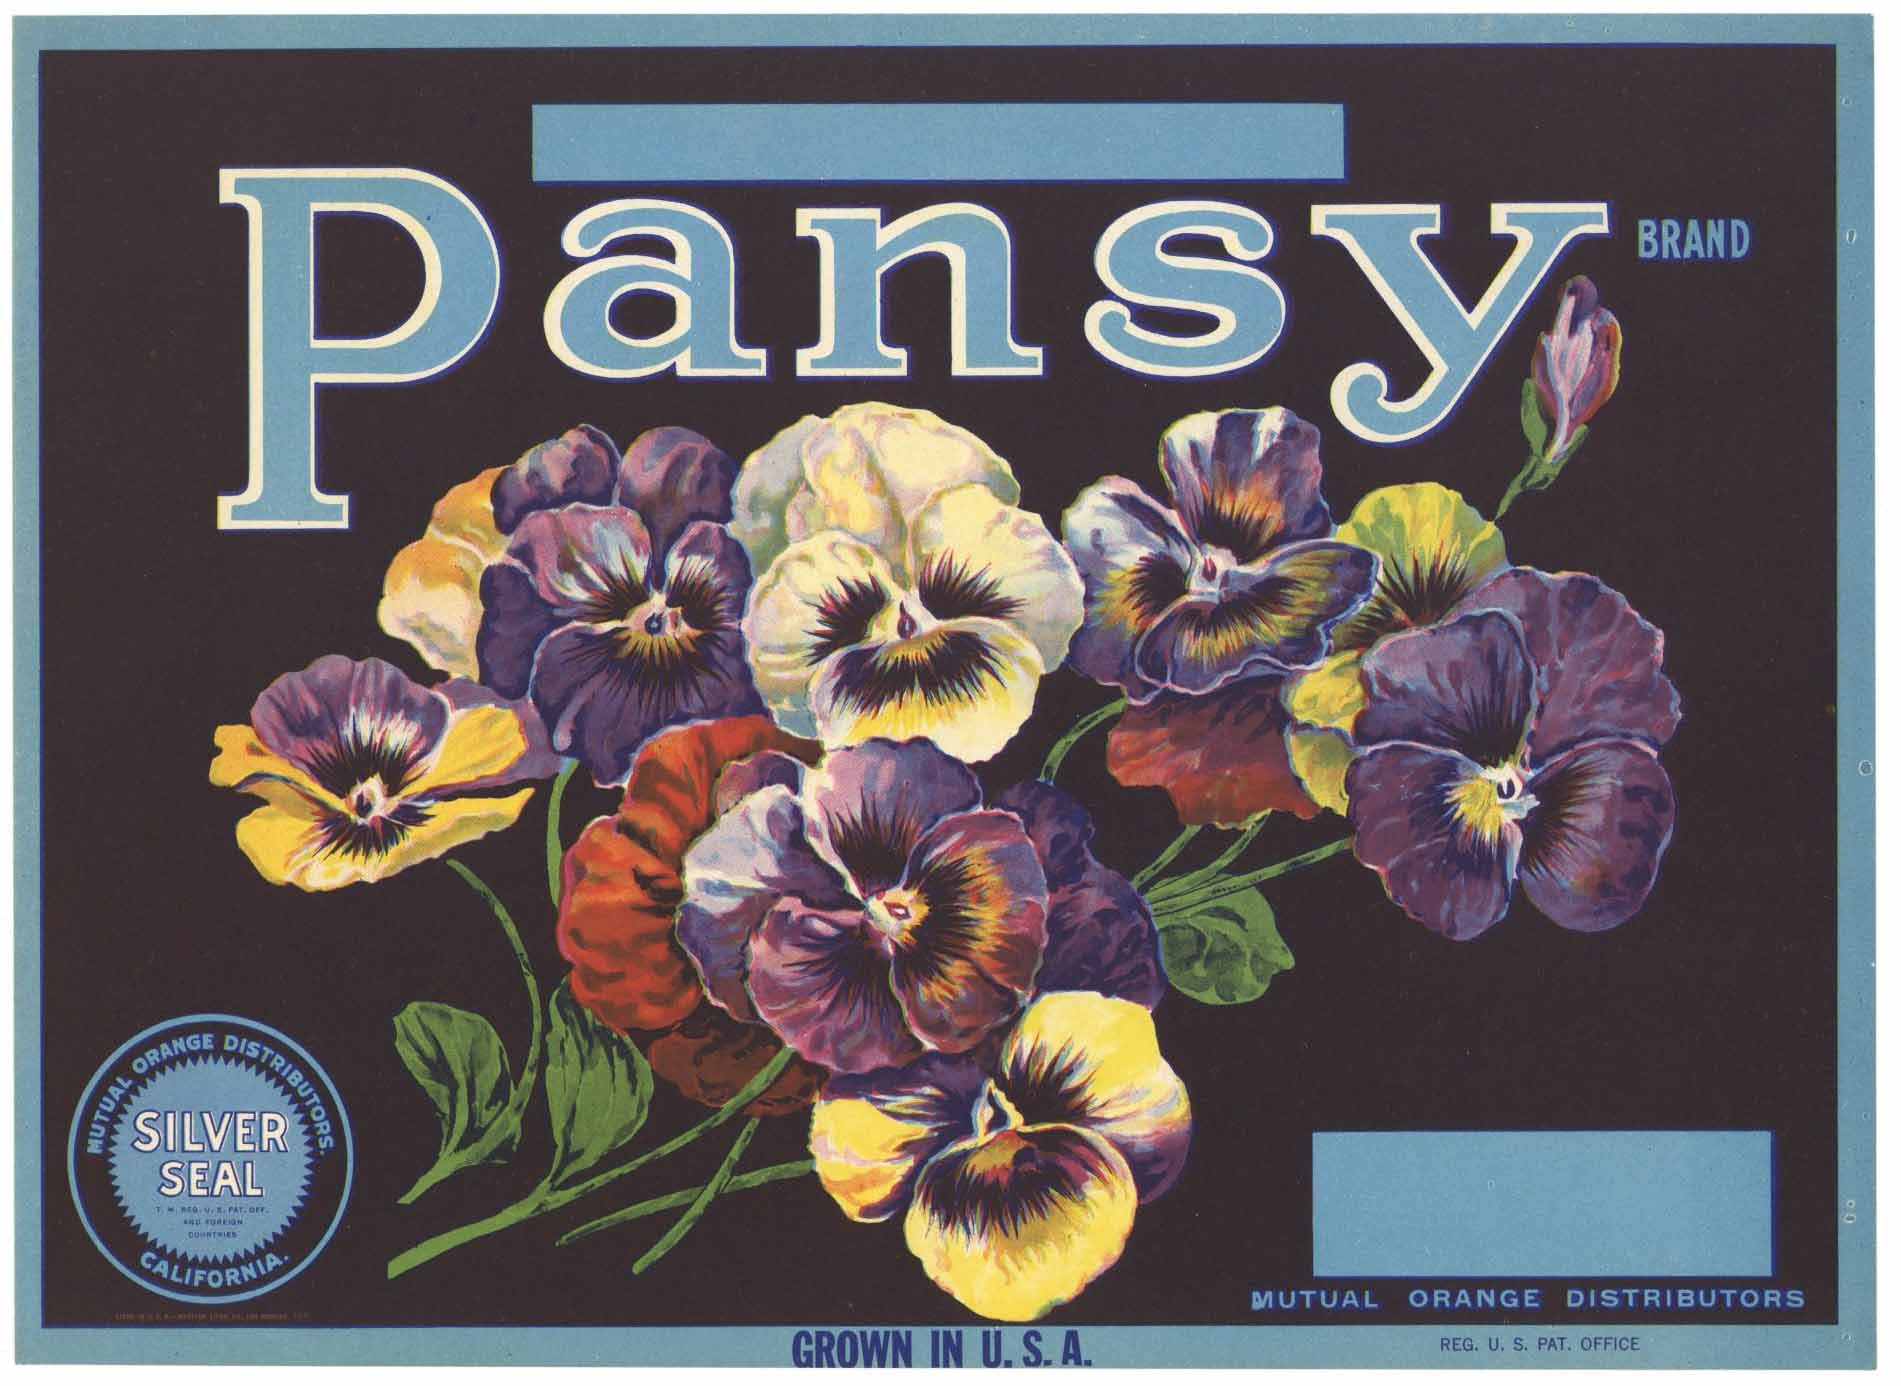 Pansy Brand Vintage Lemon Crate Label